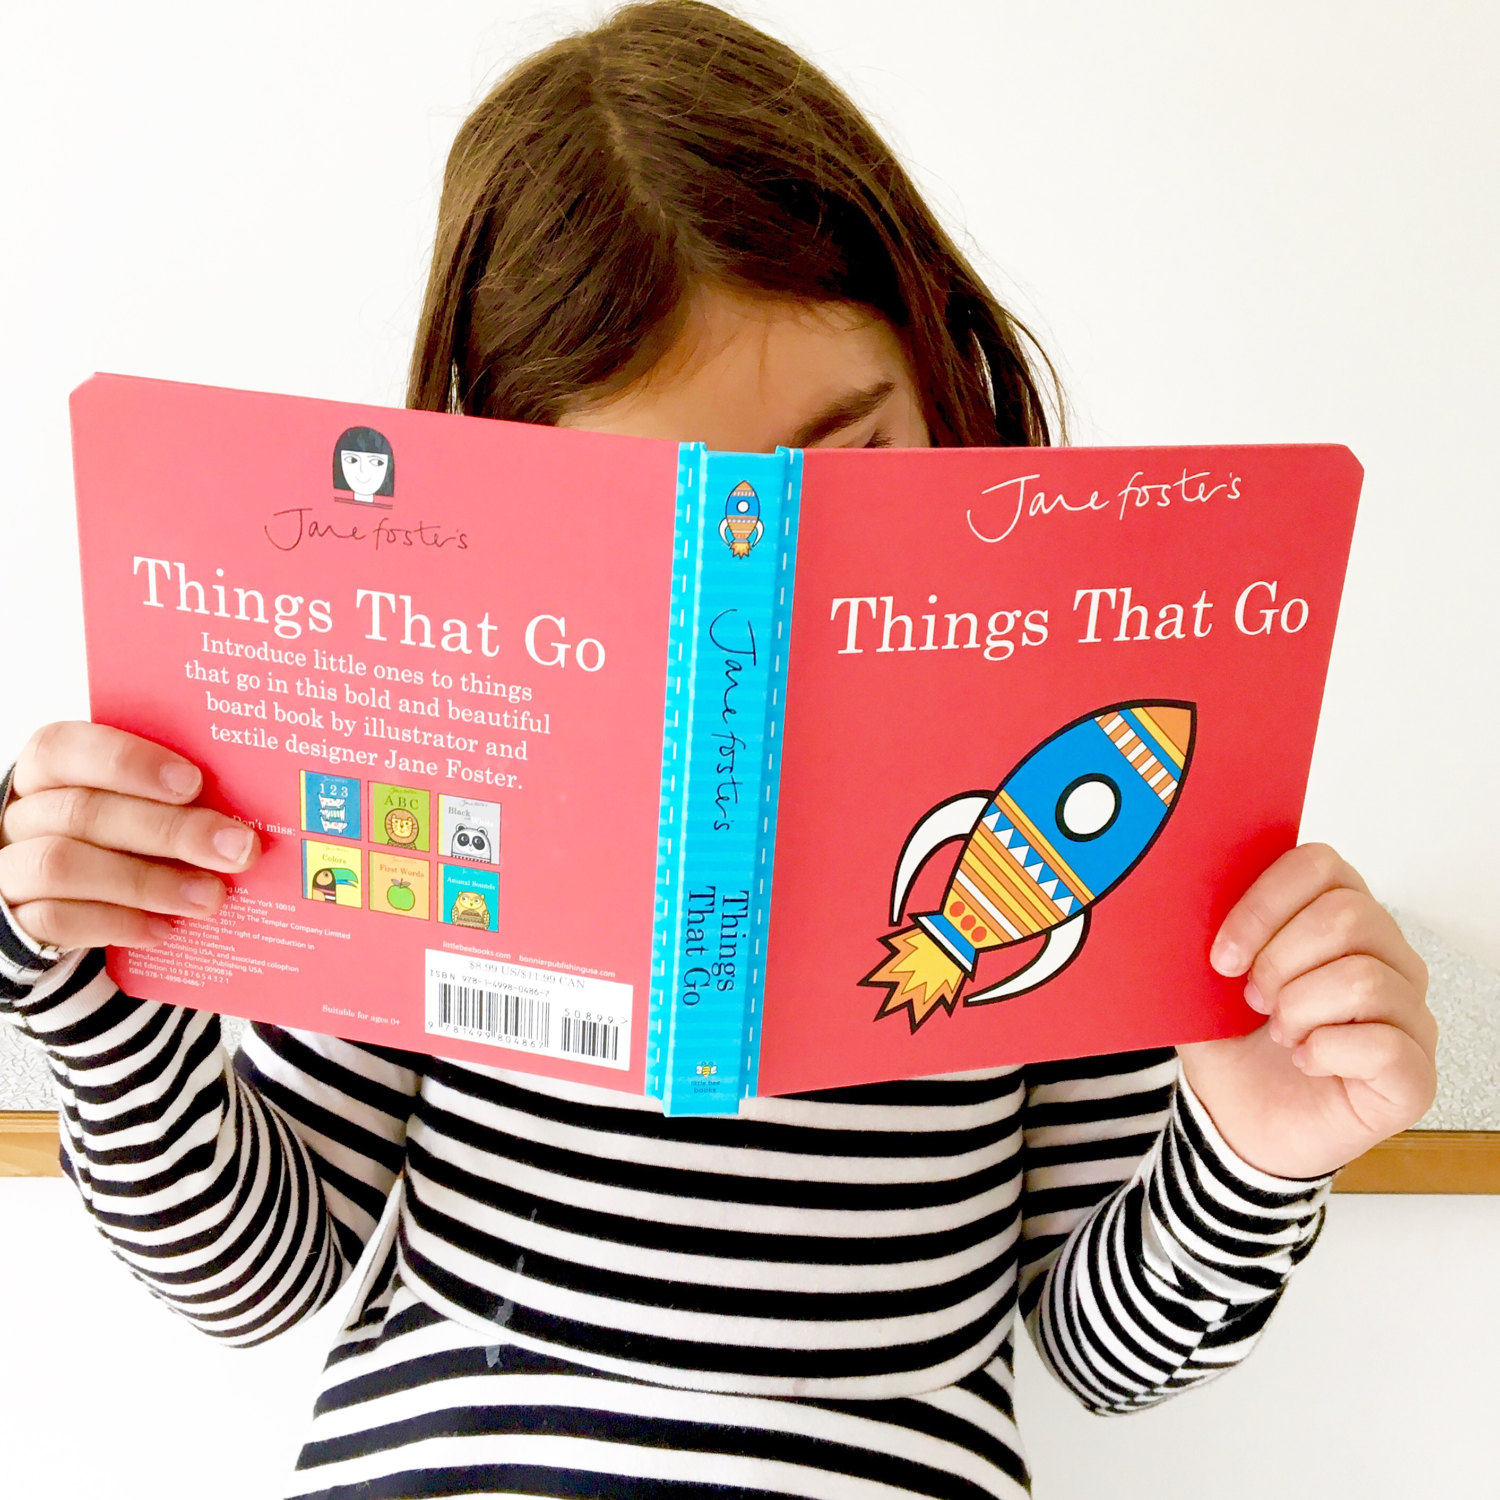 My baby board book 'Things That Go' published by Templar Publishing.